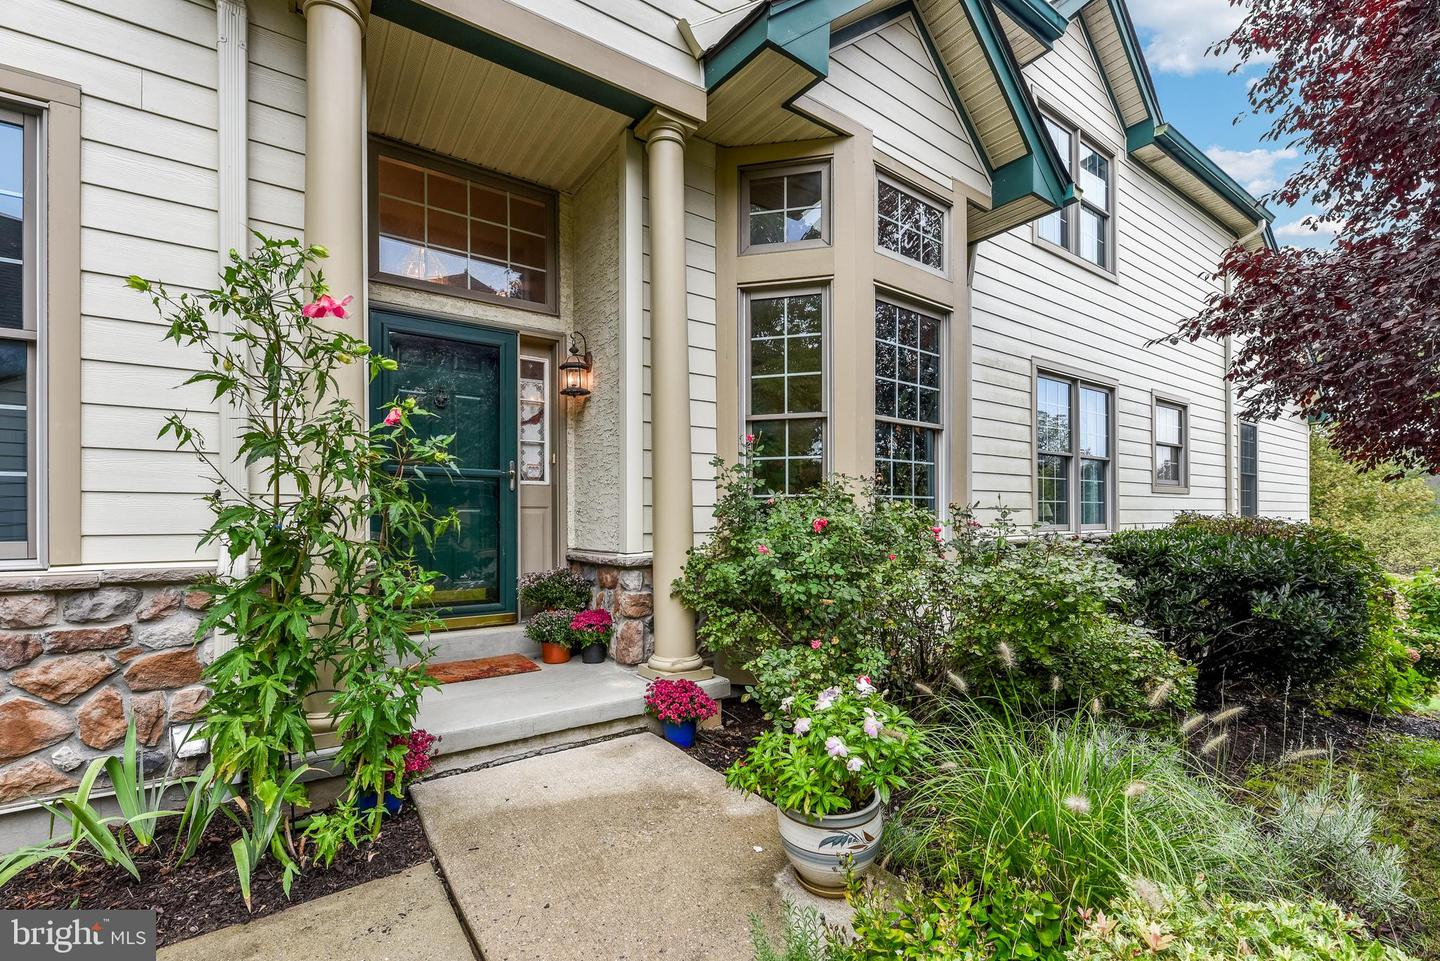 1638 Yardley West Chester, PA 19380